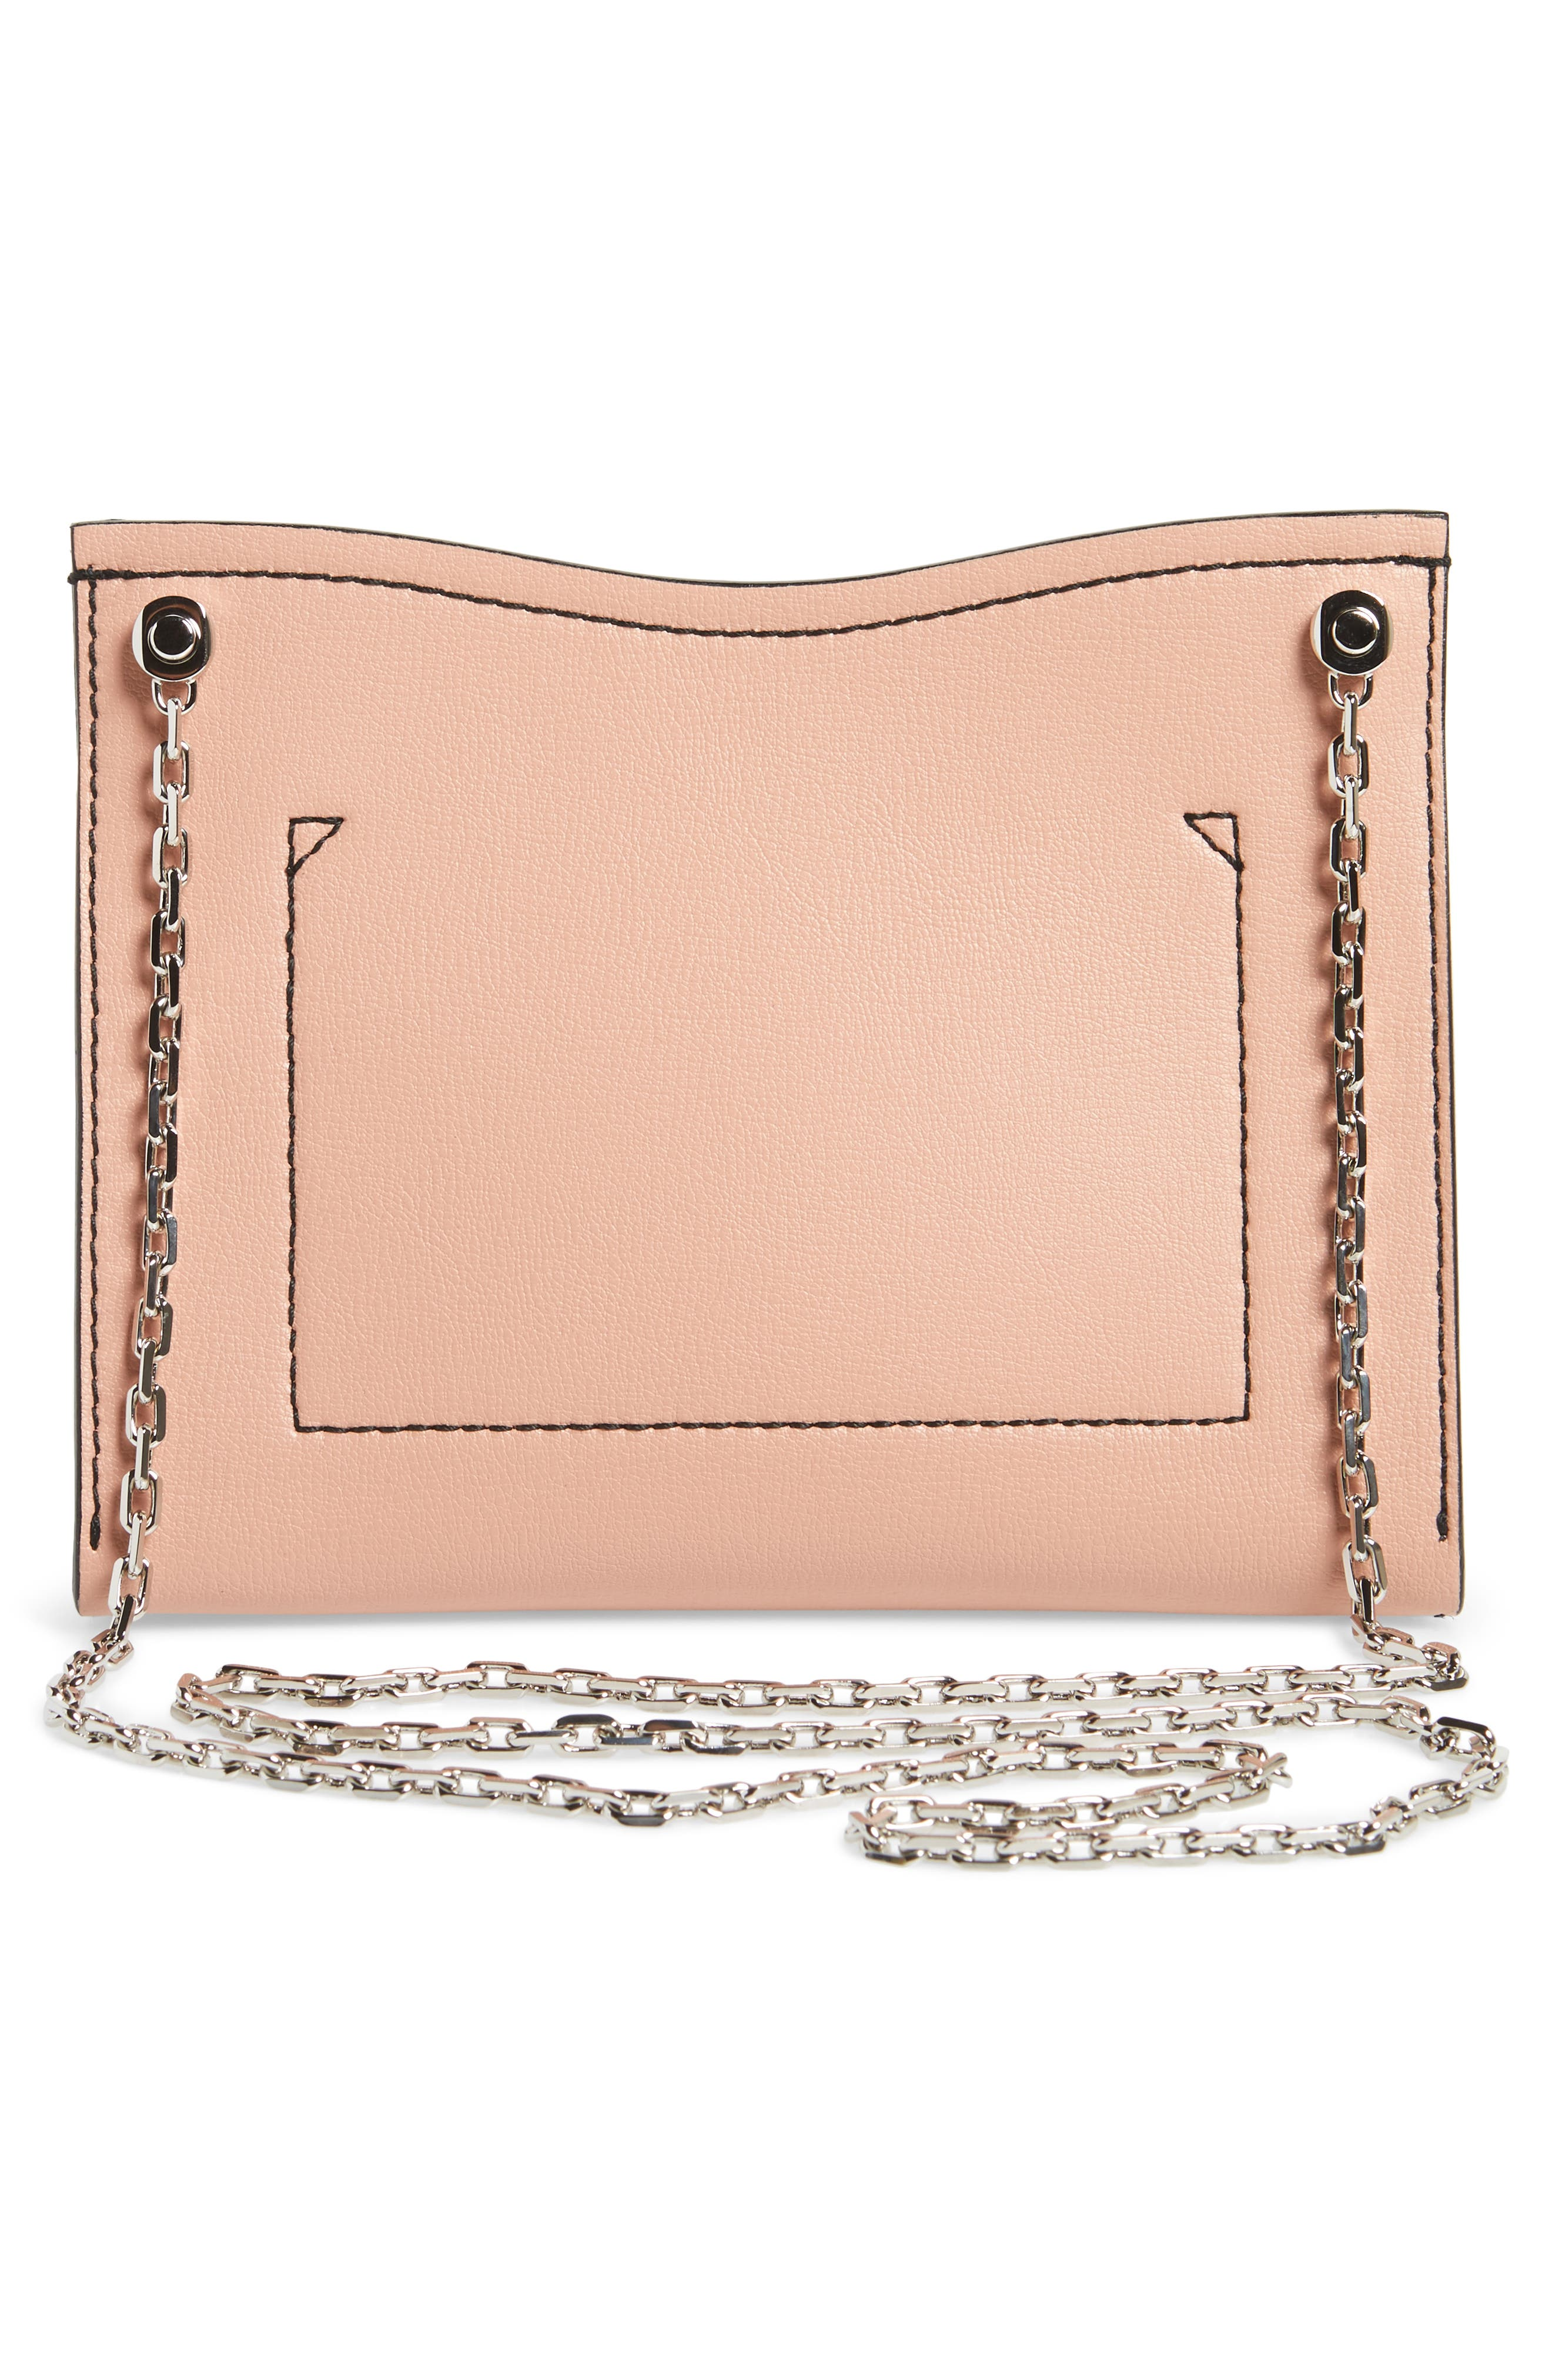 Small Calfskin Leather Clutch,                             Alternate thumbnail 3, color,                             Deep Blush